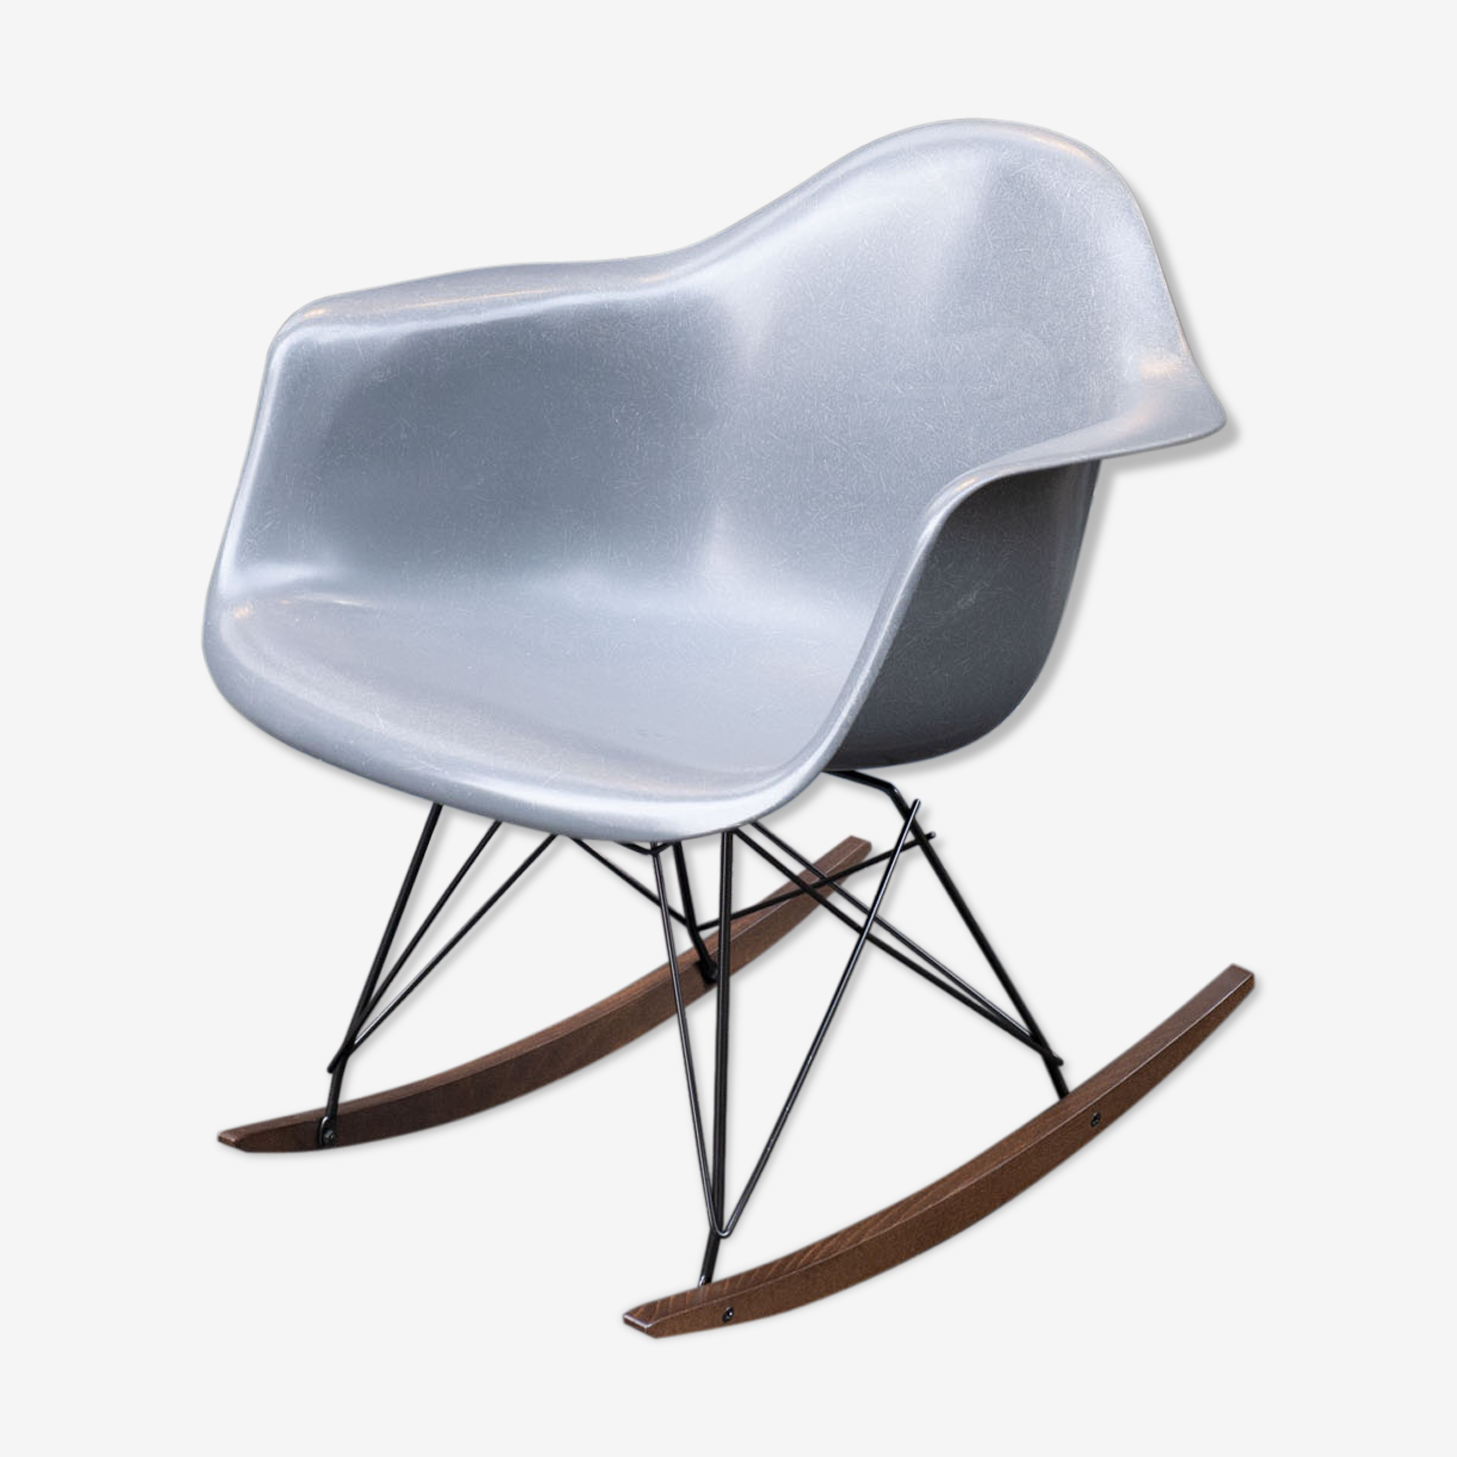 Rocking chair par Charles et Ray Eames édition Herman Miller